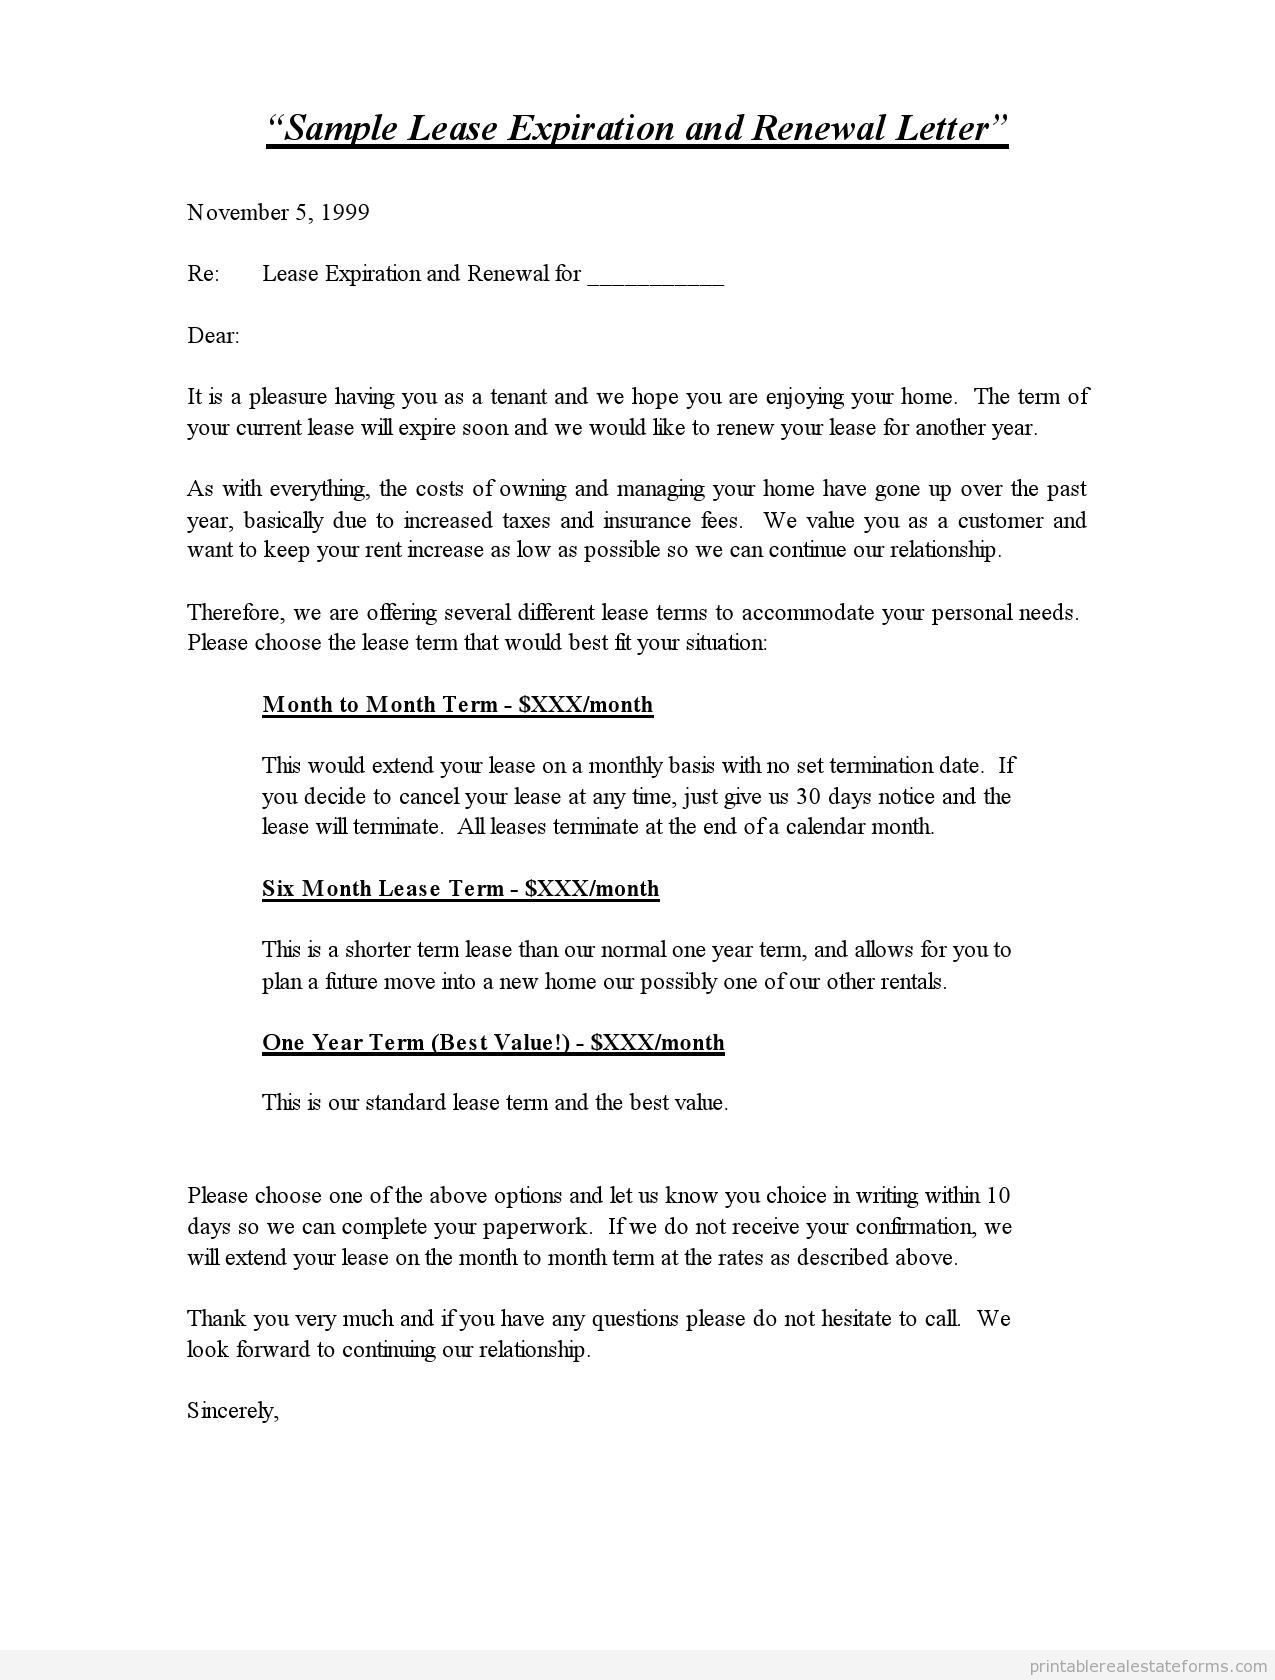 Delightful Printable Sample Lease Expiration And Renewal Letter Template 2015